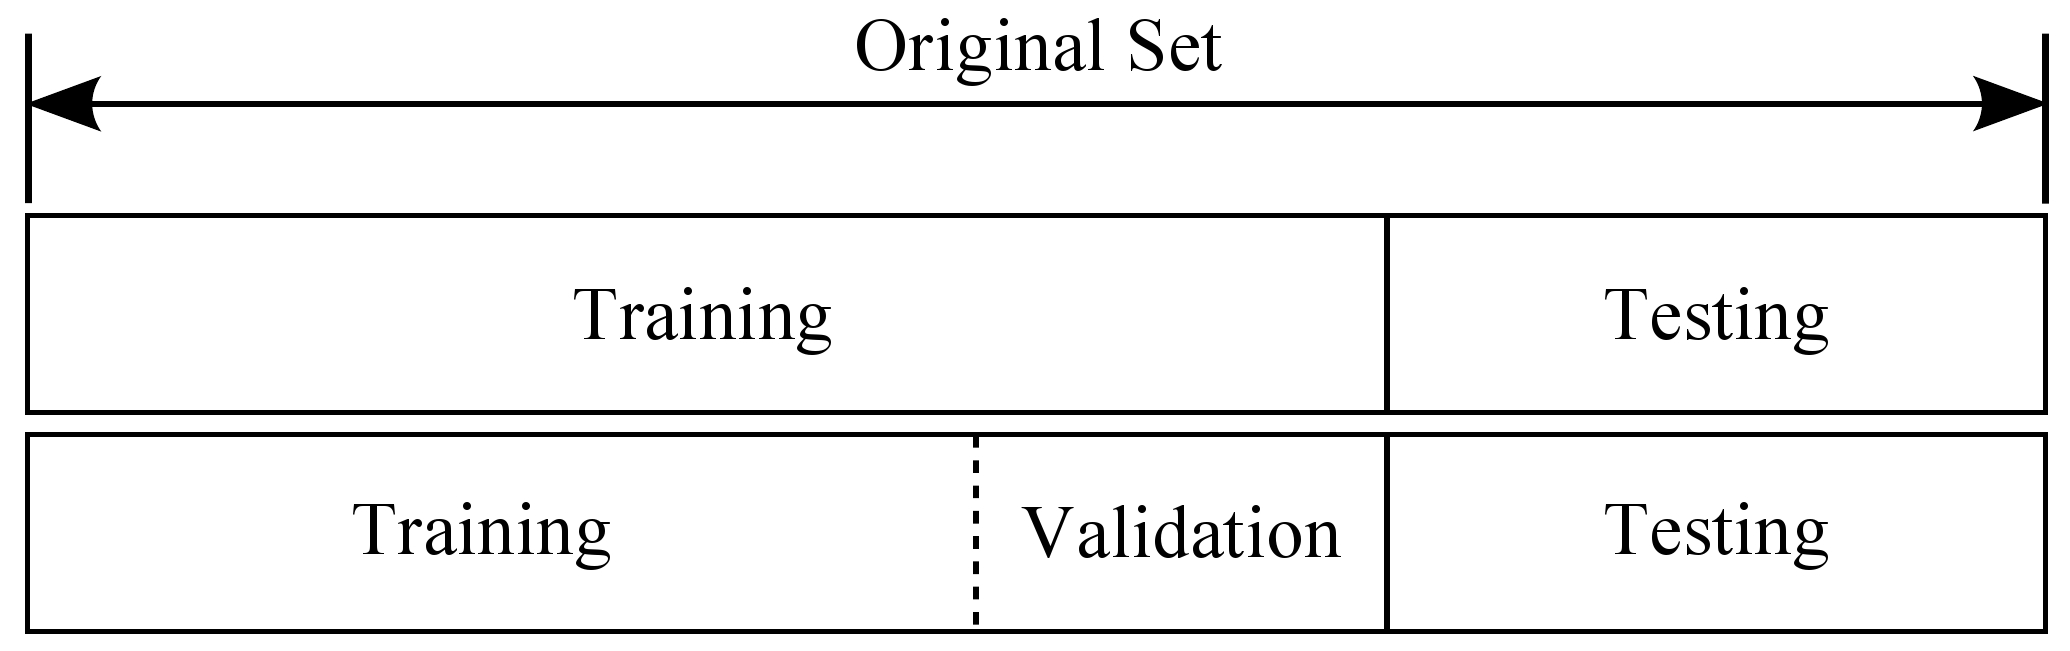 validation-set